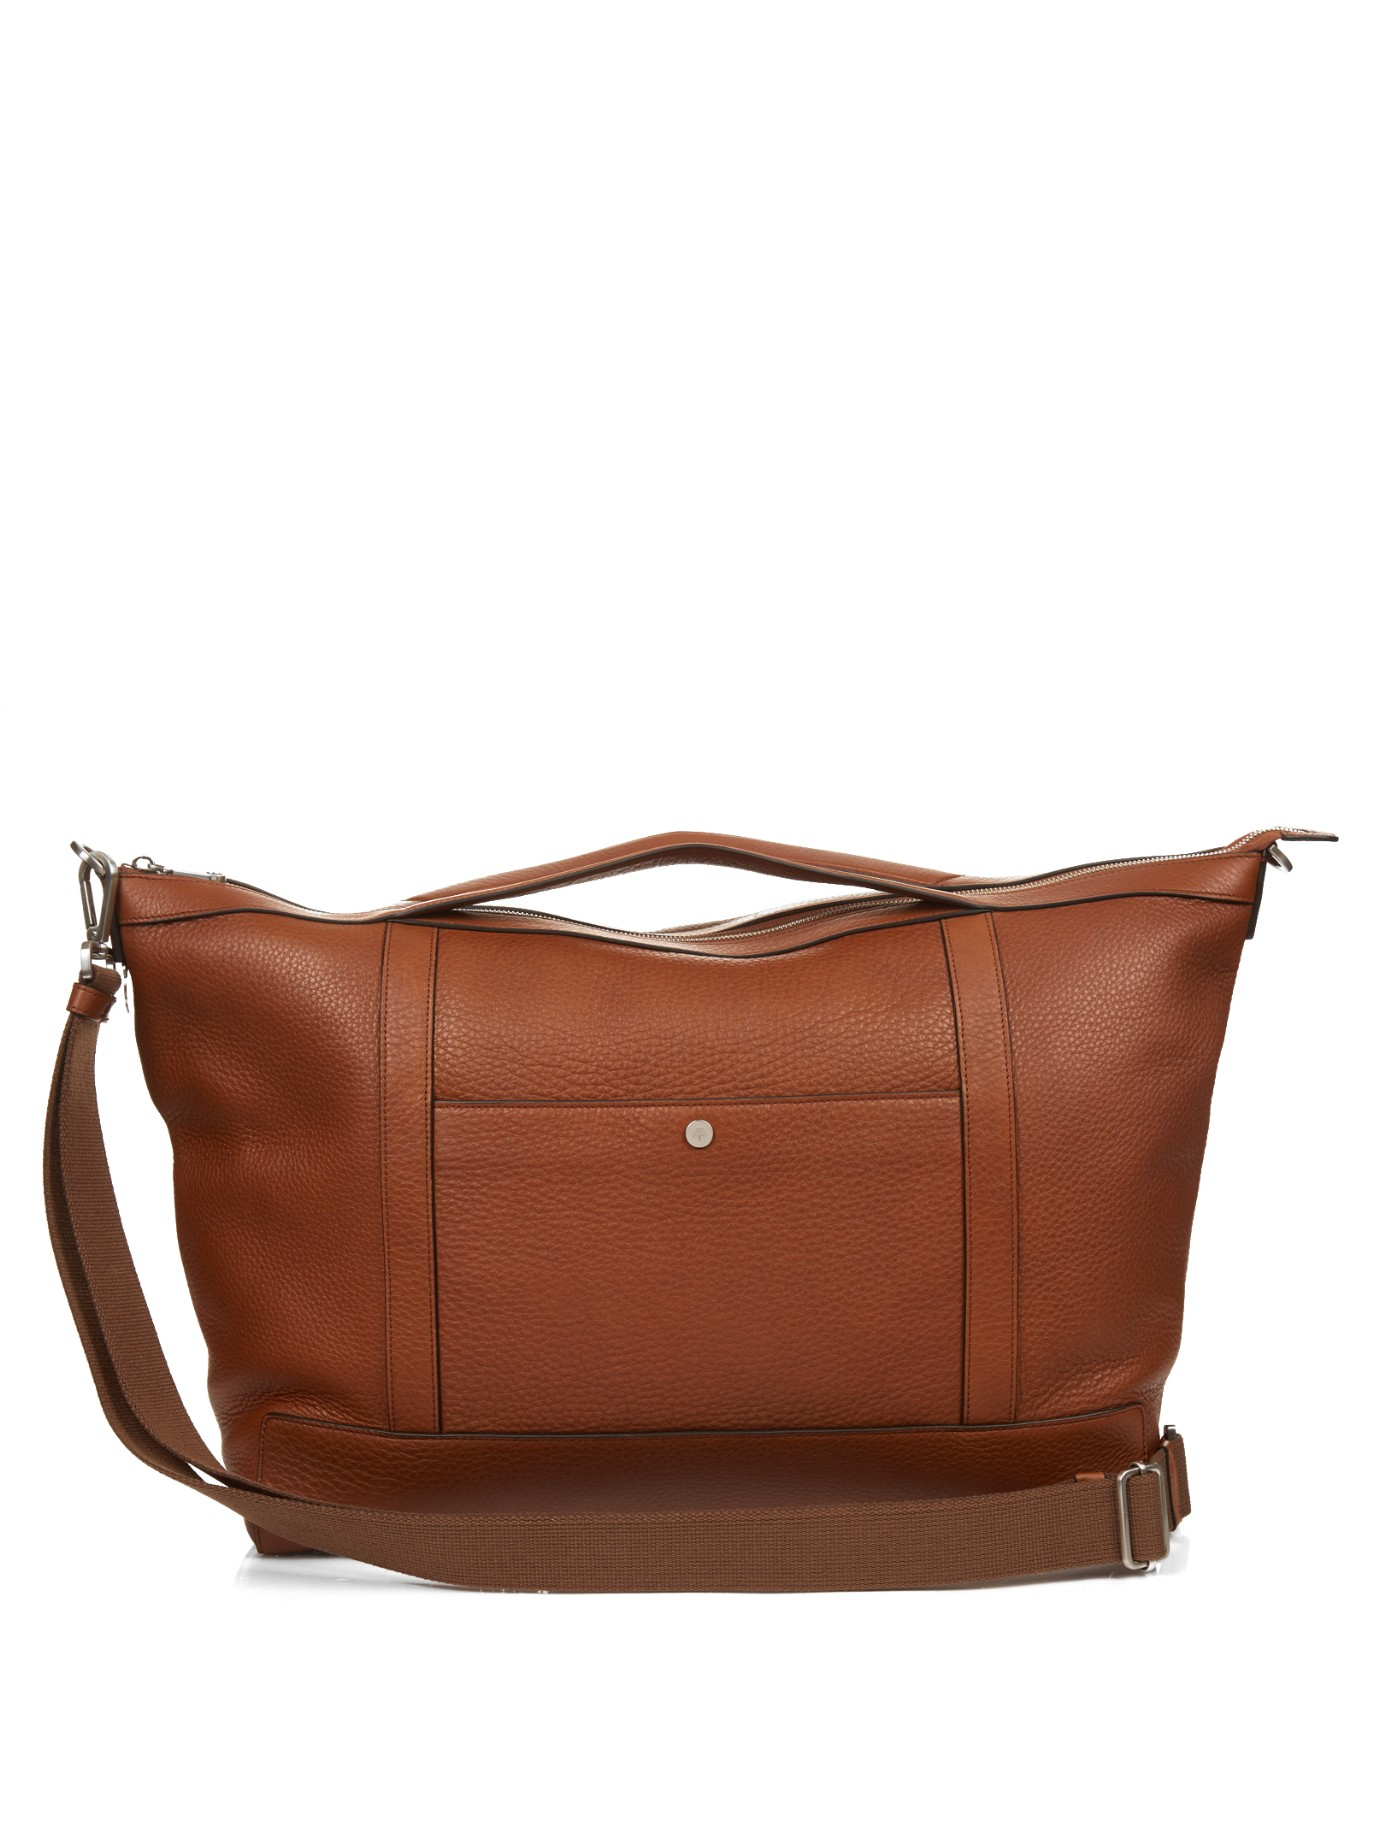 59d6d0c752c6 ... france mulberry multi tasker grained leather holdall in brown for men  lyst b65df 097bc ...